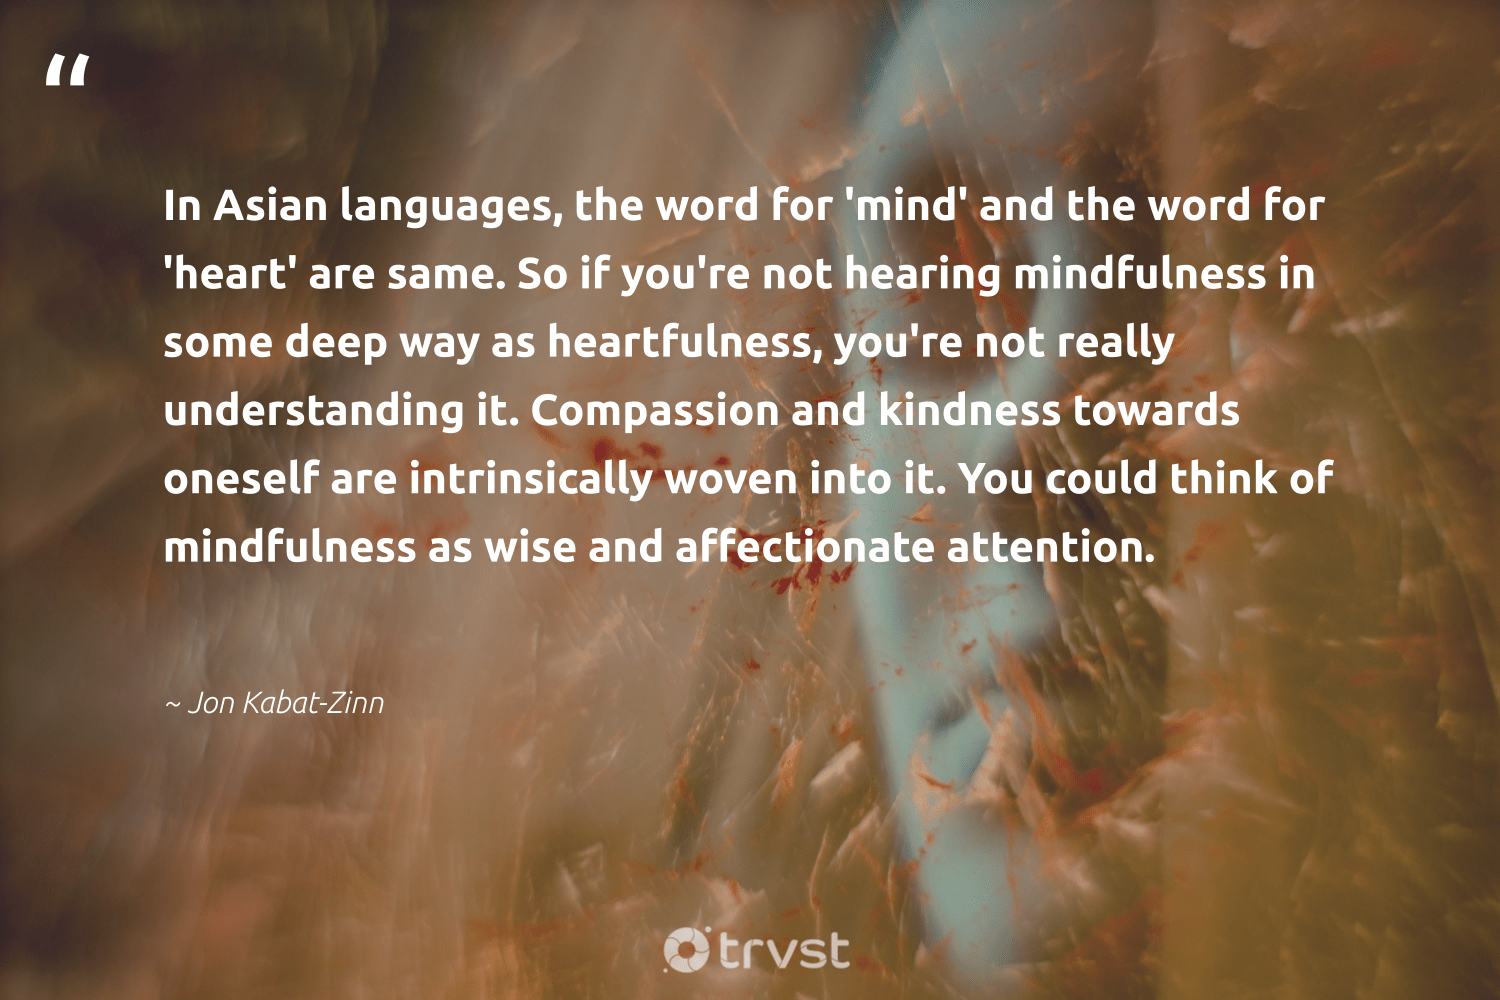 """""""In Asian languages, the word for 'mind' and the word for 'heart' are same. So if you're not hearing mindfulness in some deep way as heartfulness, you're not really understanding it. Compassion and kindness towards oneself are intrinsically woven into it. You could think of mindfulness as wise and affectionate attention.""""  - Jon Kabat-Zinn #trvst #quotes #mindfulness #kindness #mindset #mentalheatlh #togetherwecan #takeaction #growthmindset #mindful #nevergiveup #thinkgreen"""